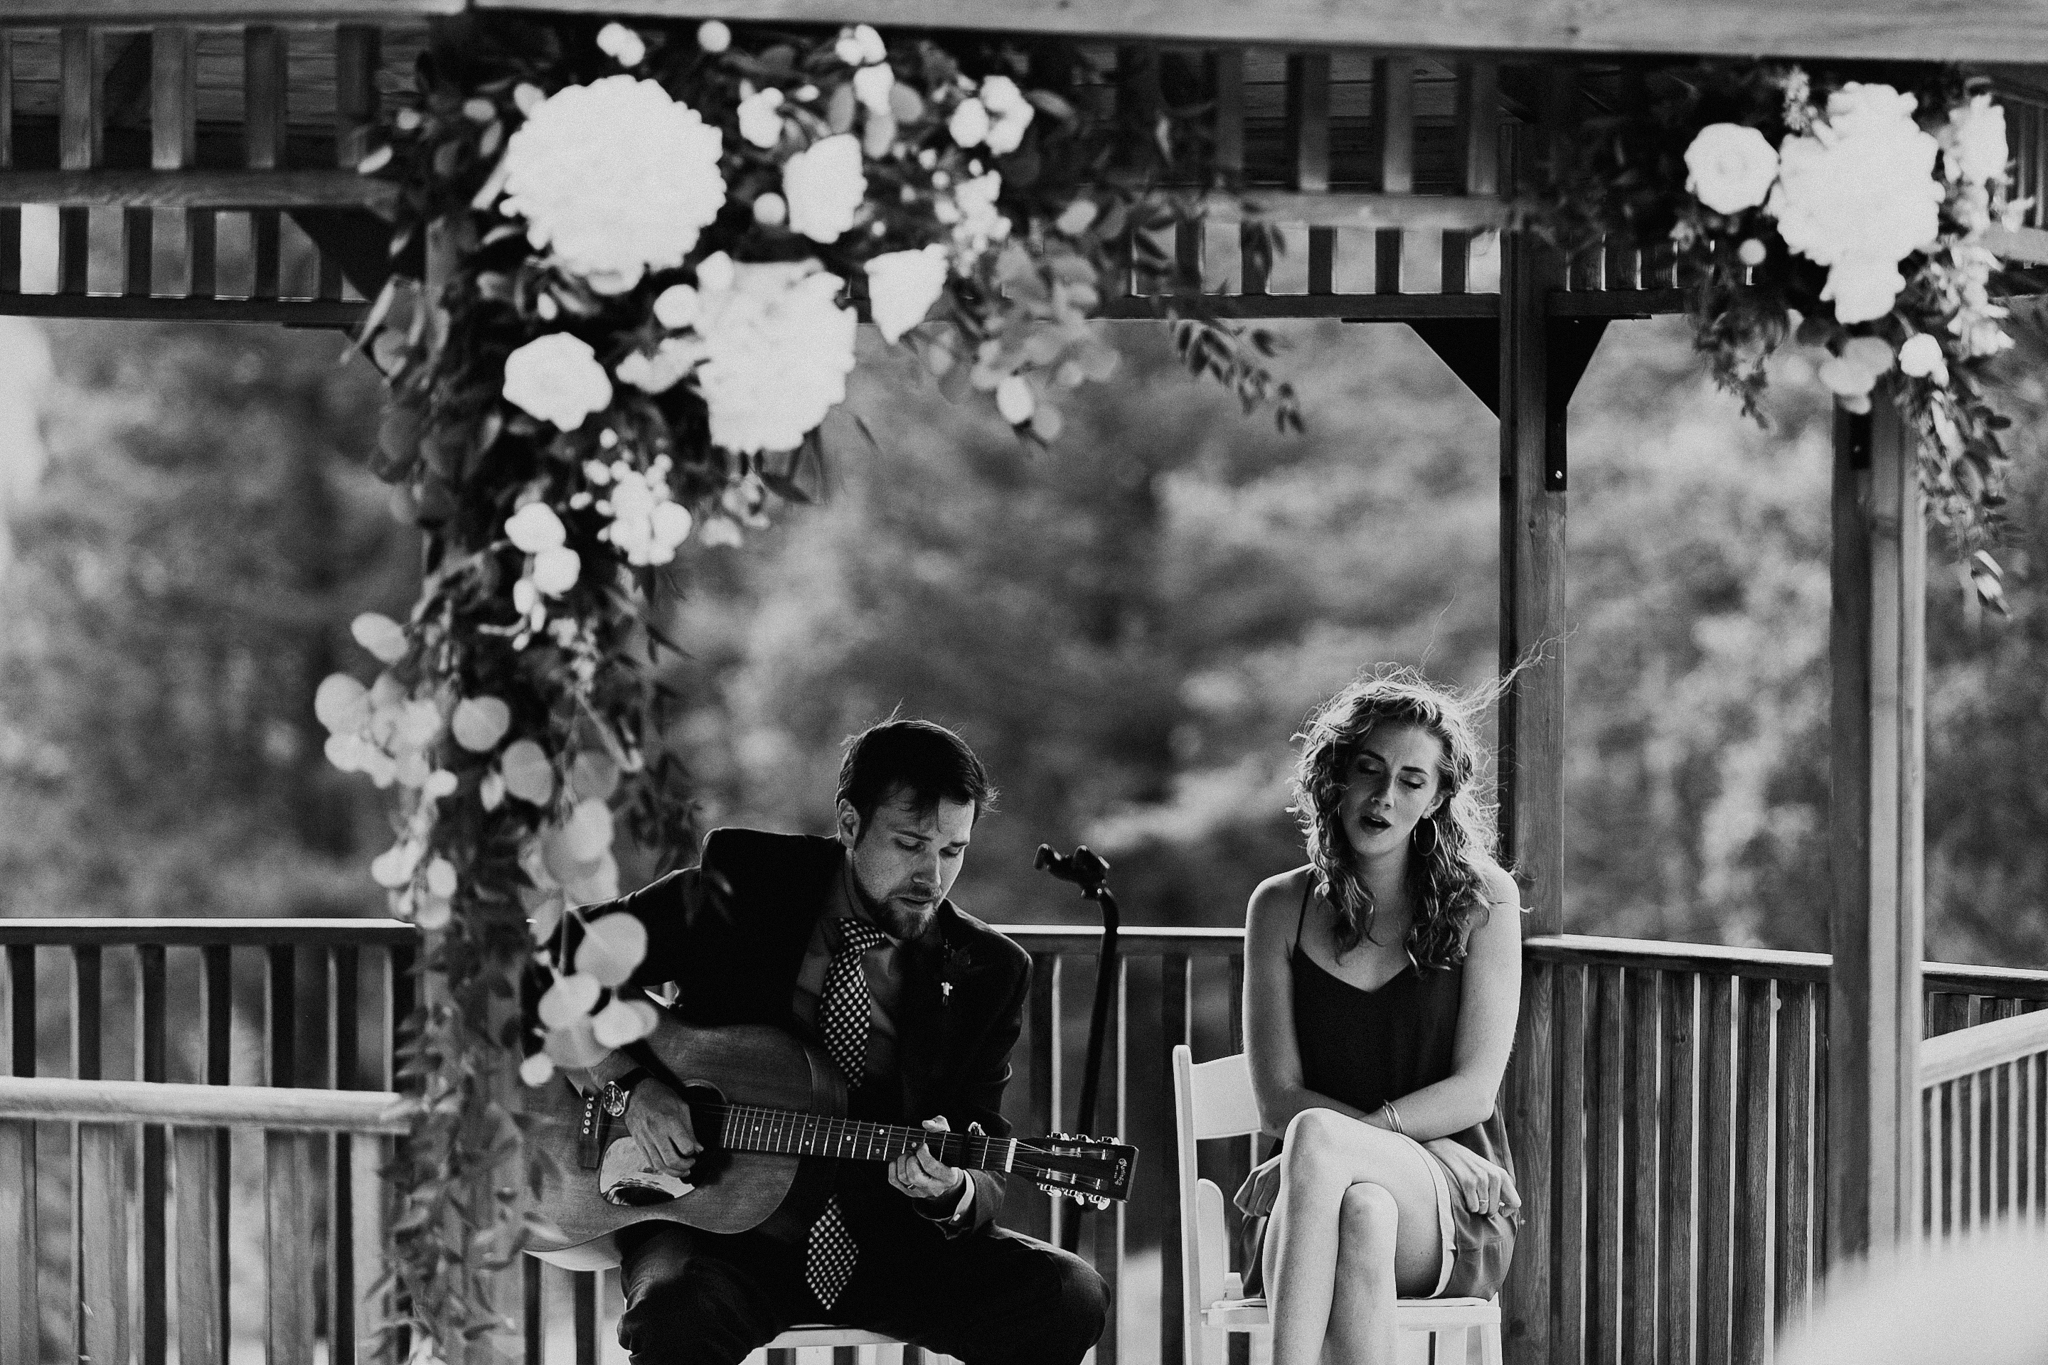 Man plays guitar and woman sings in Silvertip Resort Gazebo Canmore Alberta